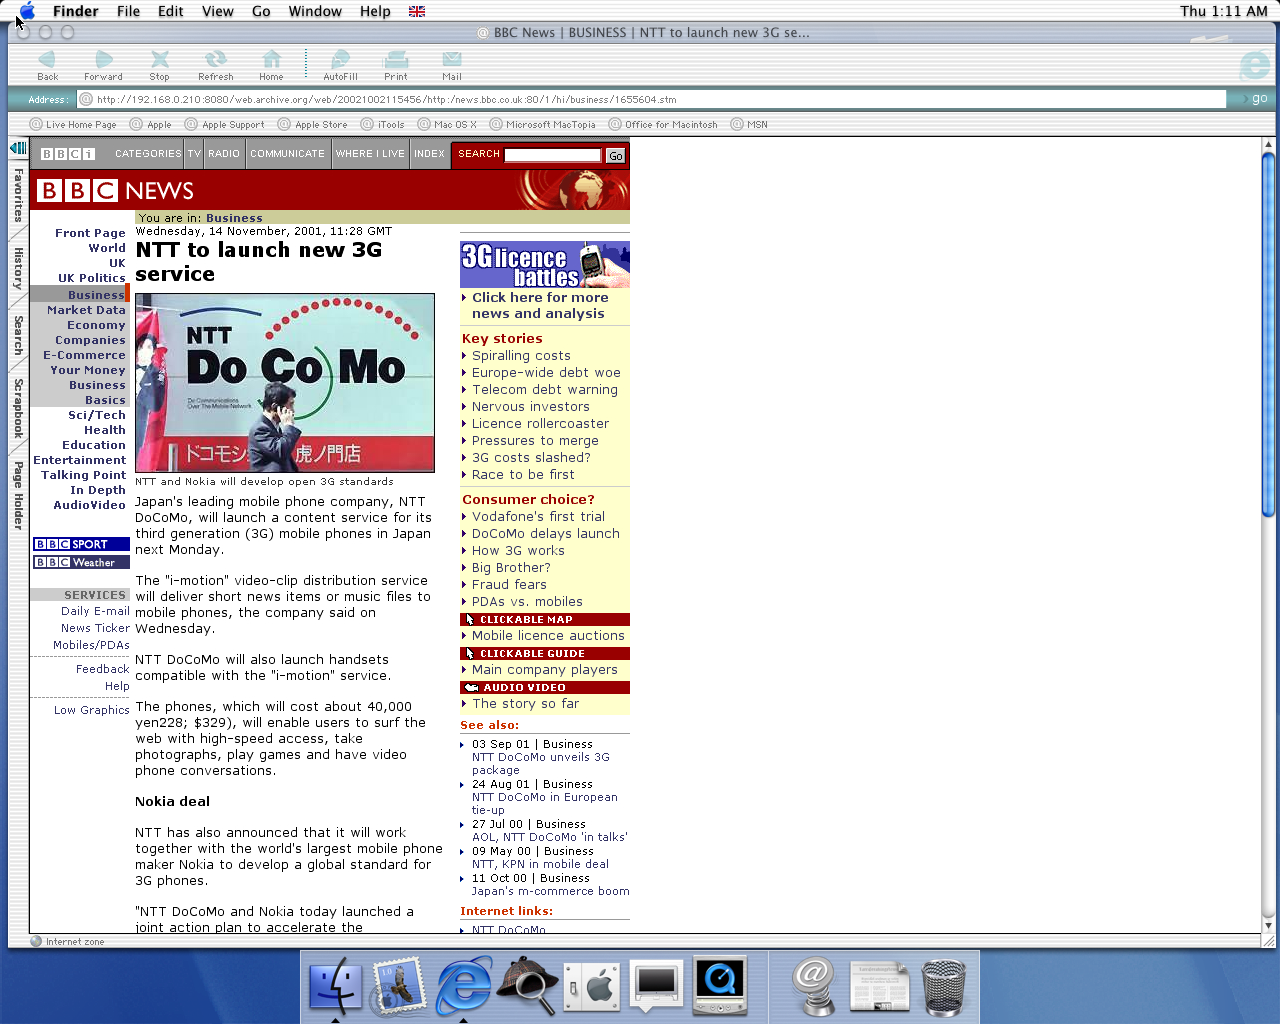 OS X 10.0 PPC with Microsoft Internet Explorer 5.1 for Mac Preview displaying a page from BBC News archived at October 02, 2002 at 11:54:56